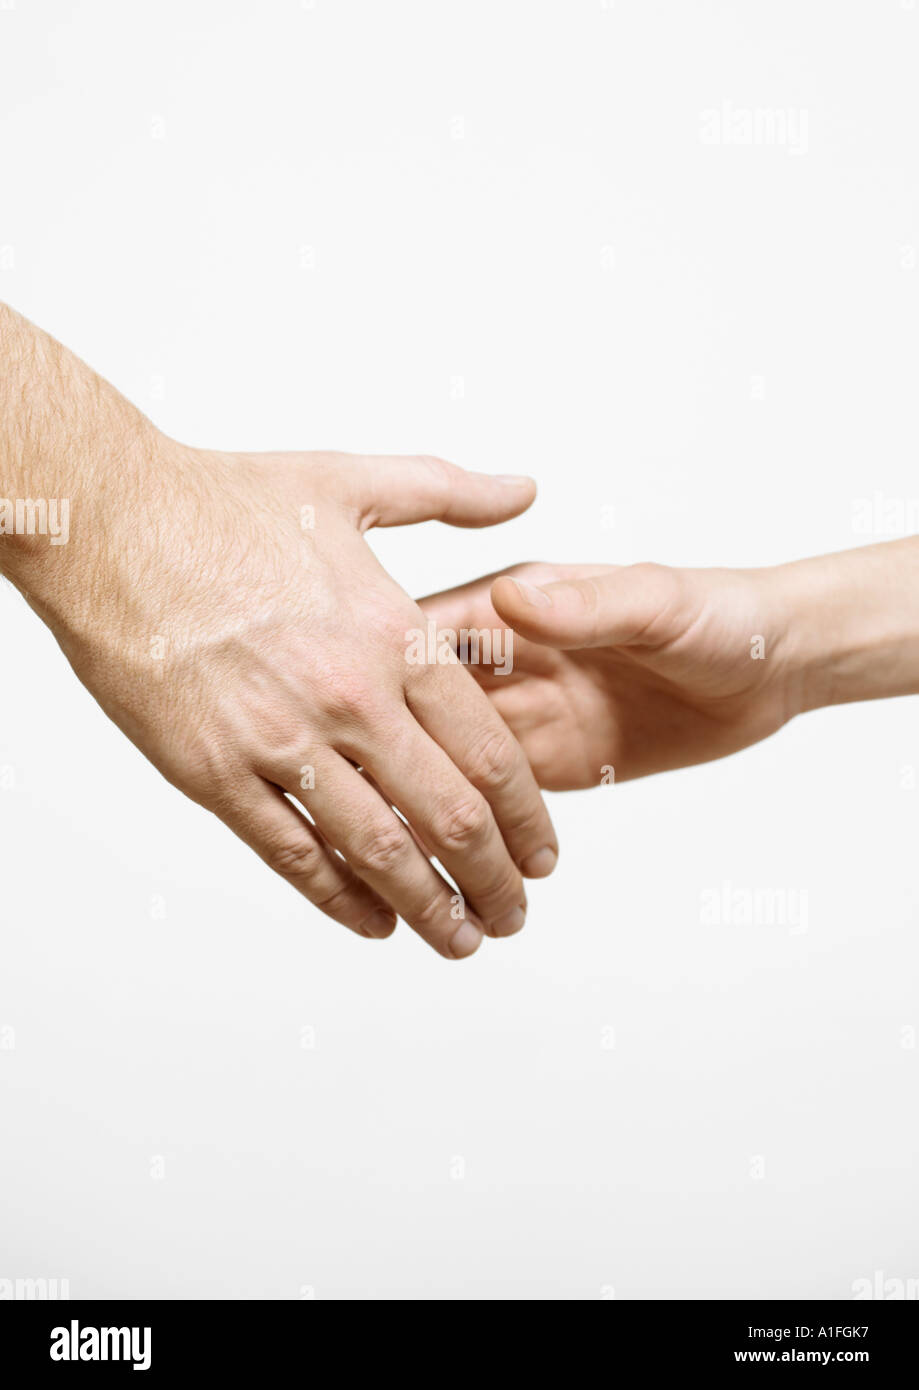 Shaking hands - Stock Image